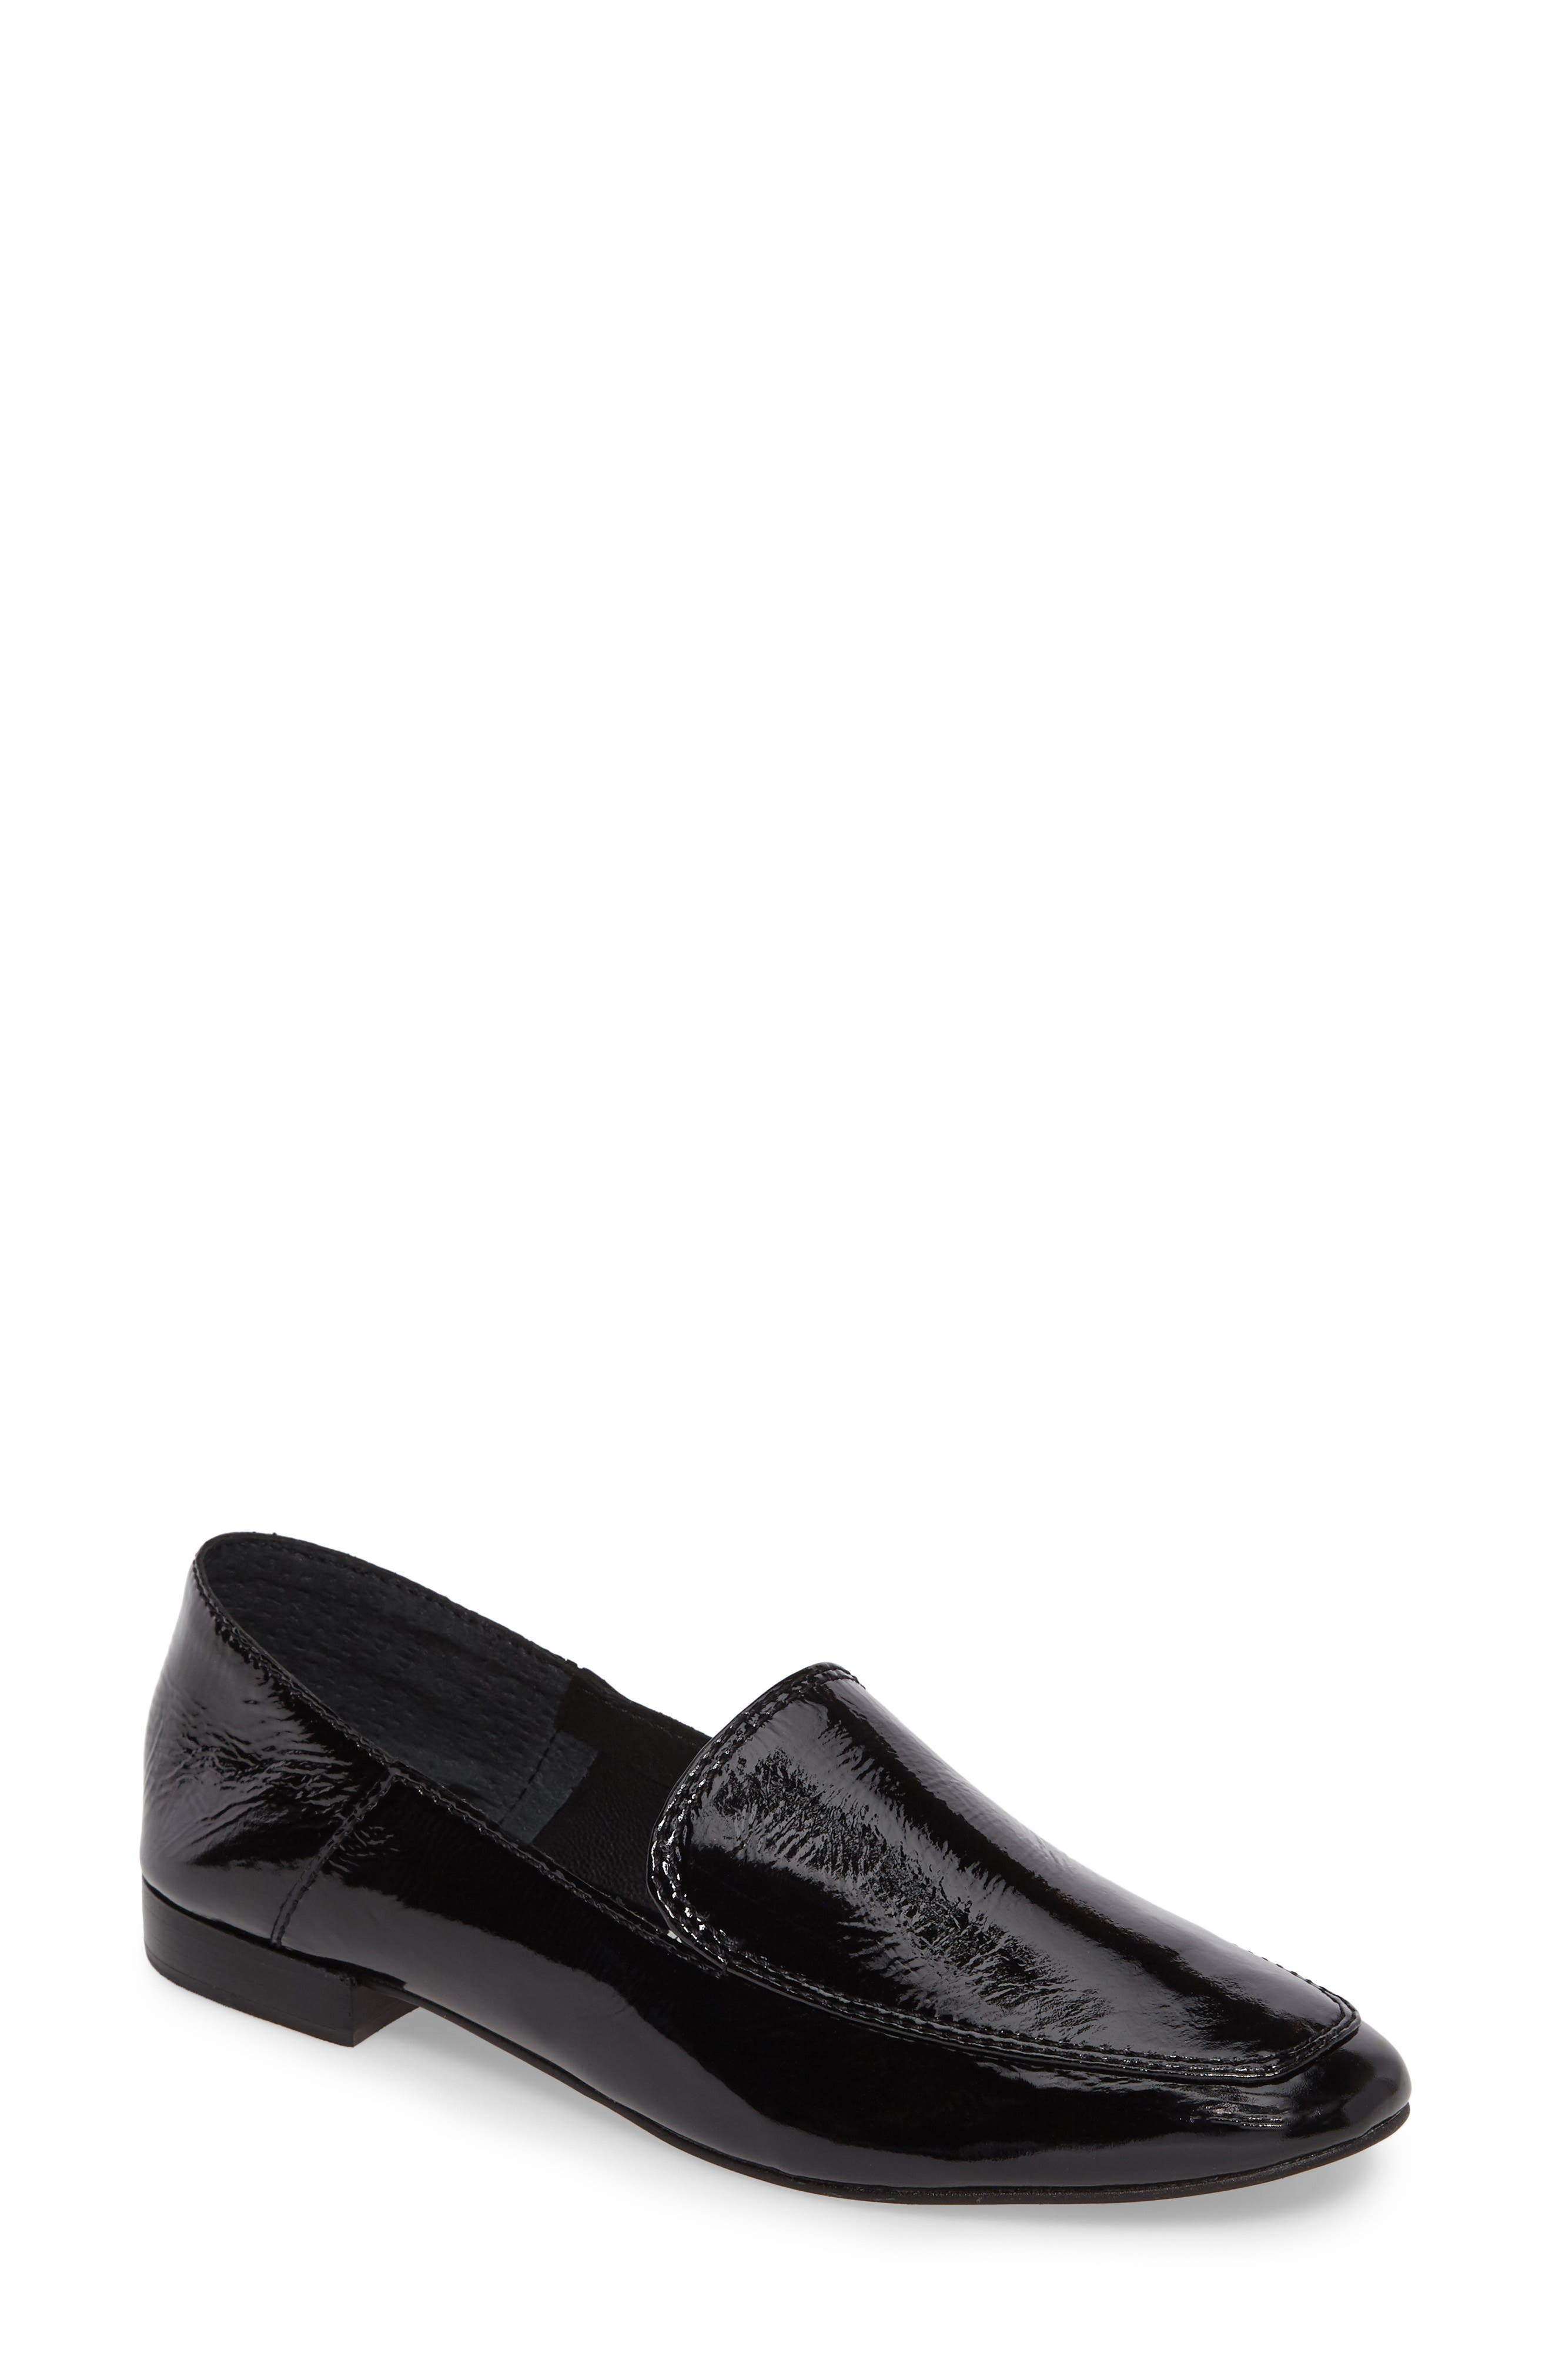 Camden Loafer,                         Main,                         color, 002